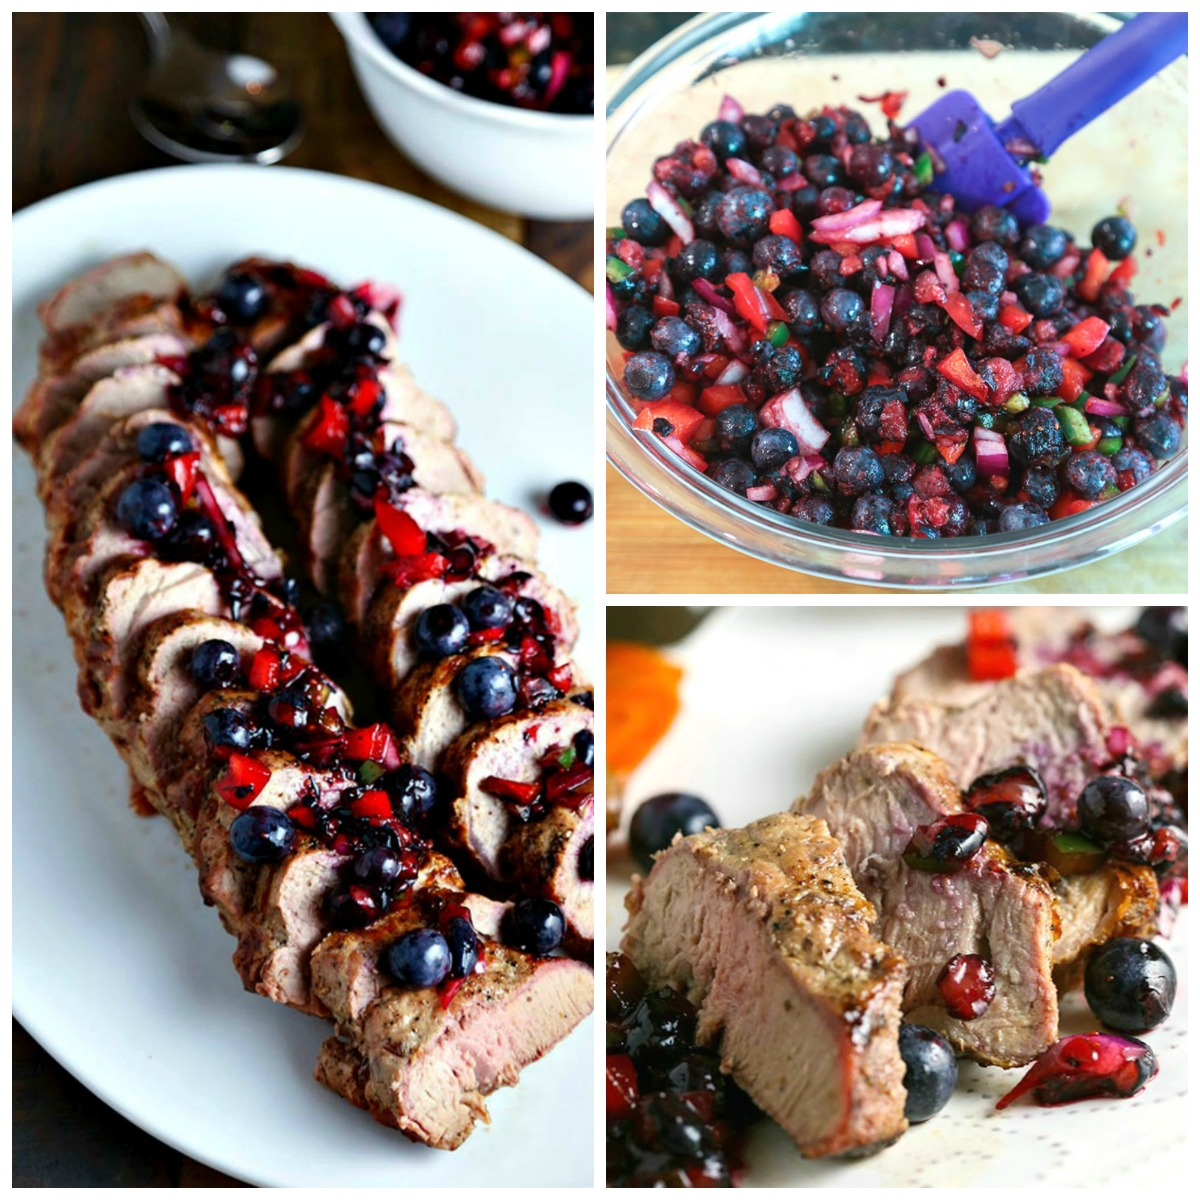 You will love this perfect summer recipe for Grilled Pork Tenderloin with Blueberry Salsa. Fresh, tender pork is grilled to perfection and then topped with a spicy berry salsa for an easy, delicious weeknight dinner recipe!